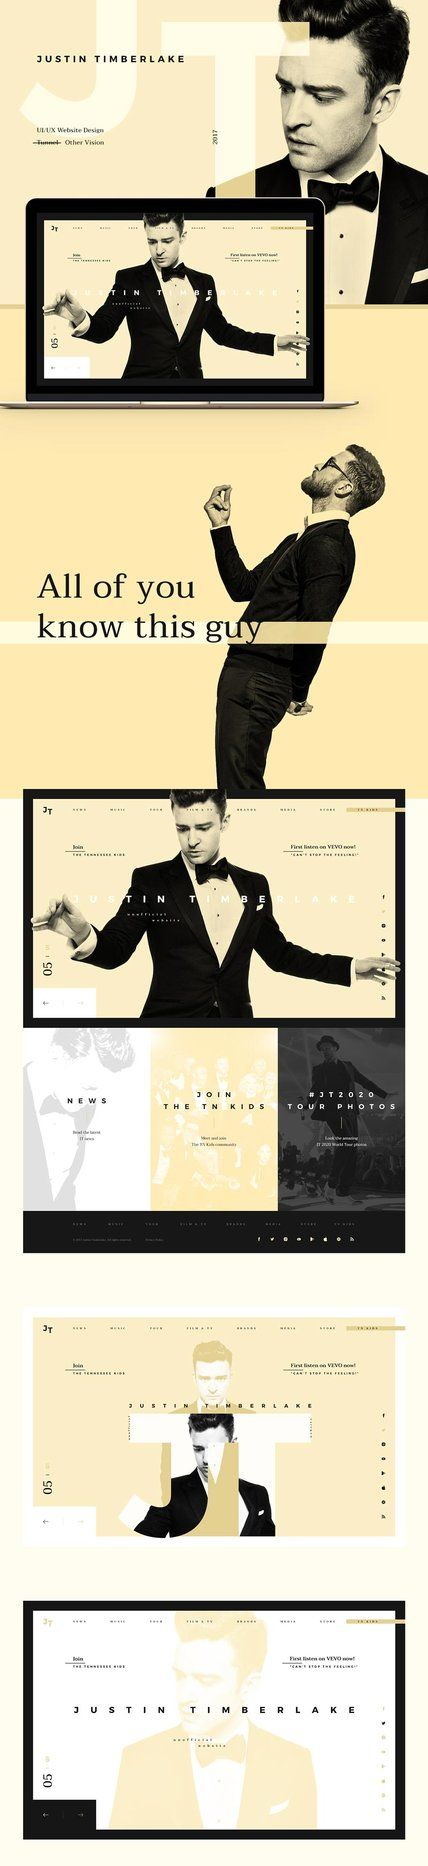 Justin Timberlake Website - Behance #ui #ux #userexperience #website #webdesign #design